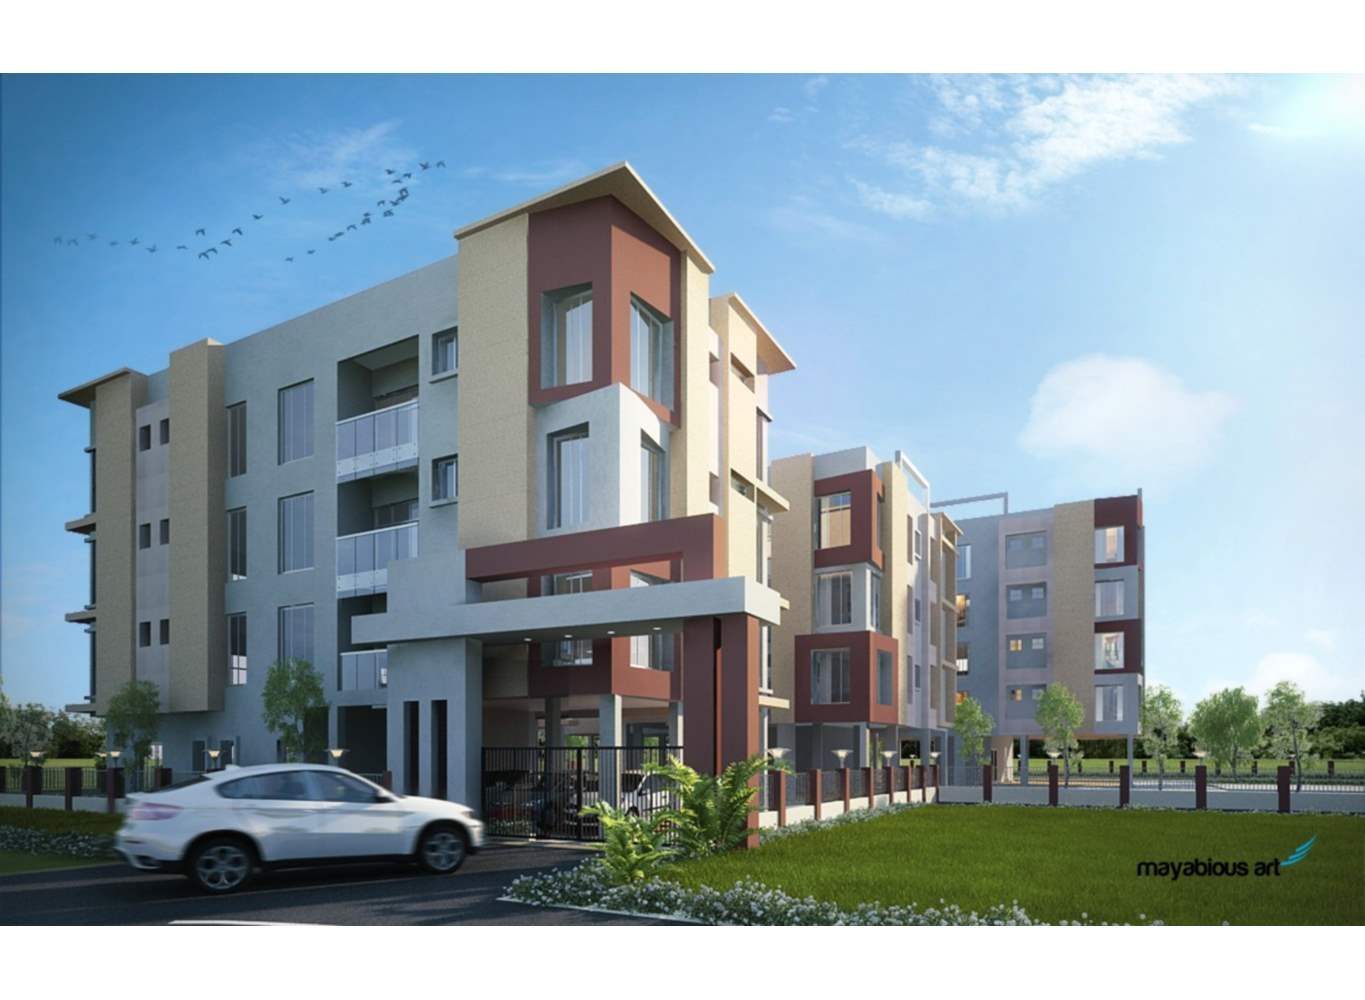 Eden Elements Entrance View - Flats in Kolkata for Sale